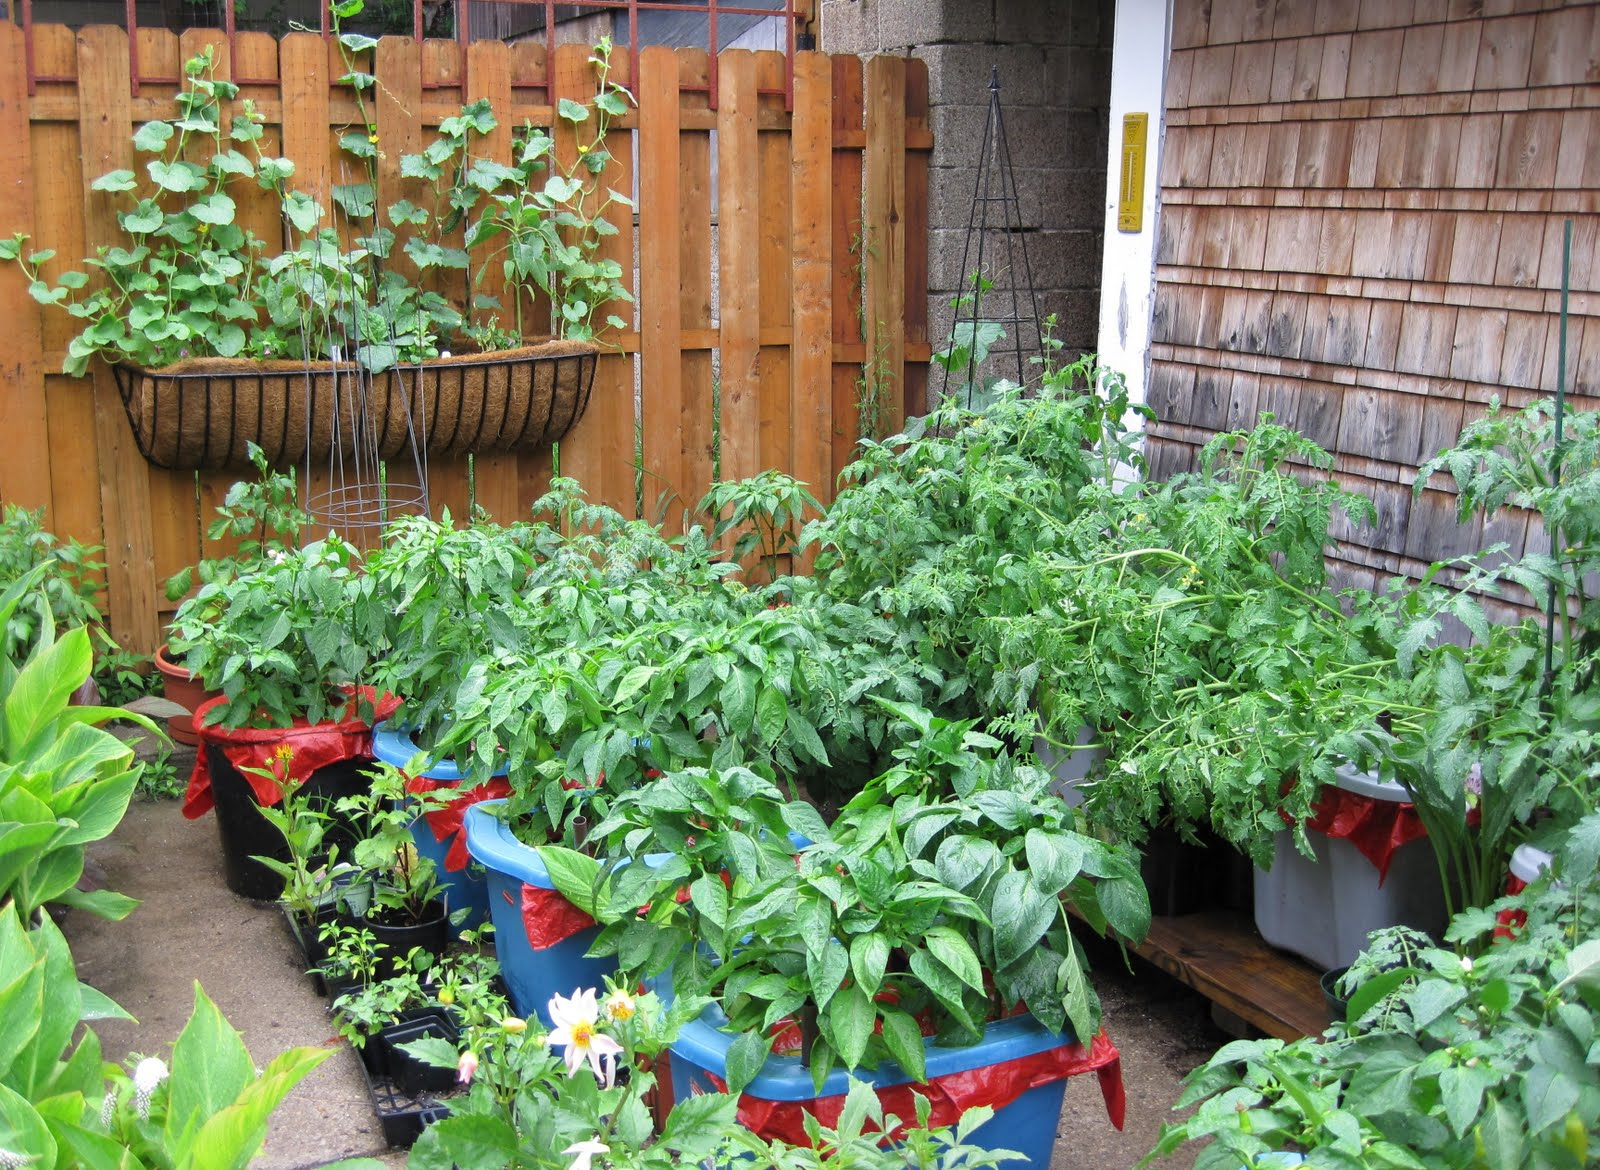 growing veggies in containers can be fun and rewarding